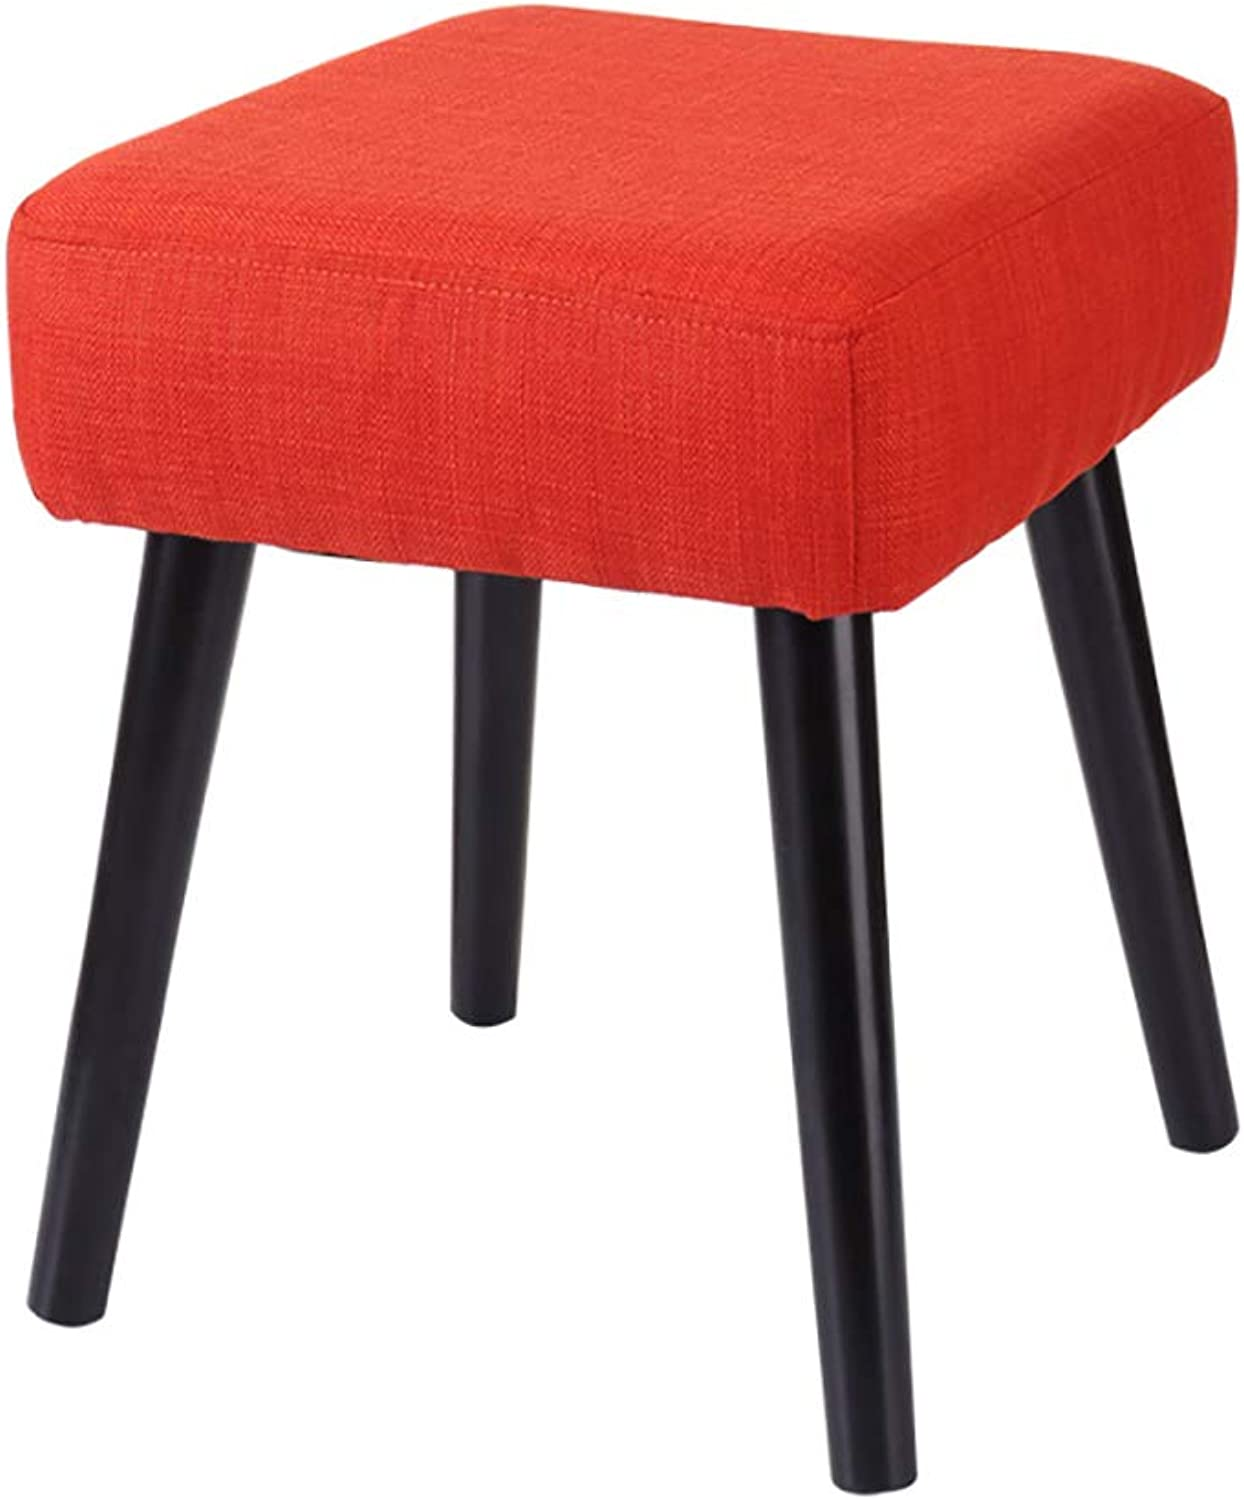 European Chair Change shoes Stool Fashion Square Stool Solid Wood Stool Fabric Sofa Stool (color   RED)